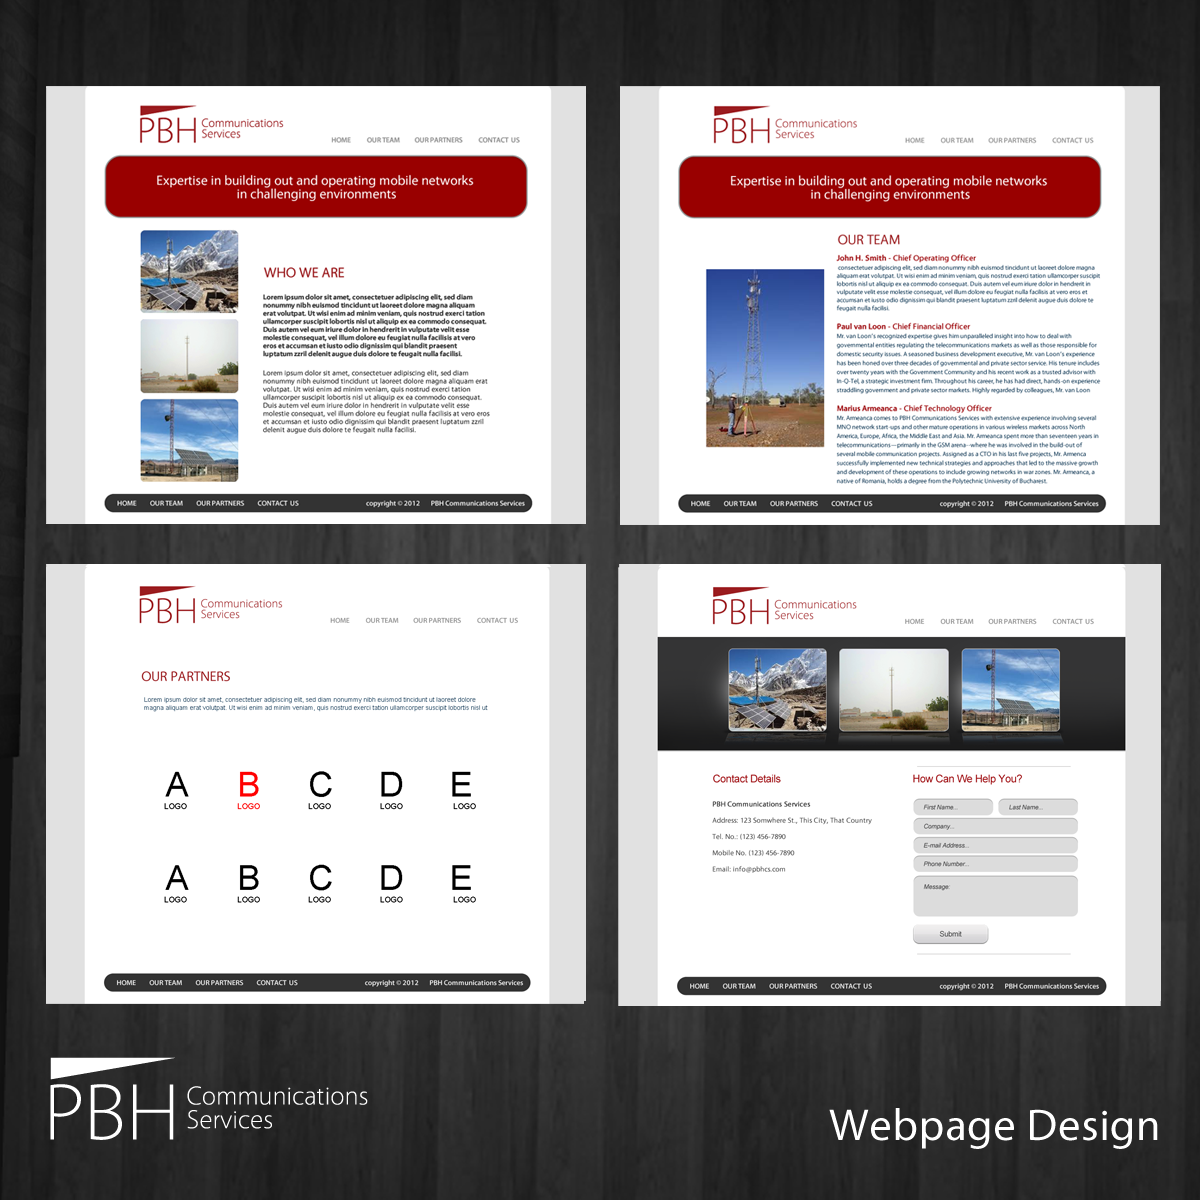 Web Page Design by storm - Entry No. 70 in the Web Page Design Contest New Web Page Design for PBH Communications Services.